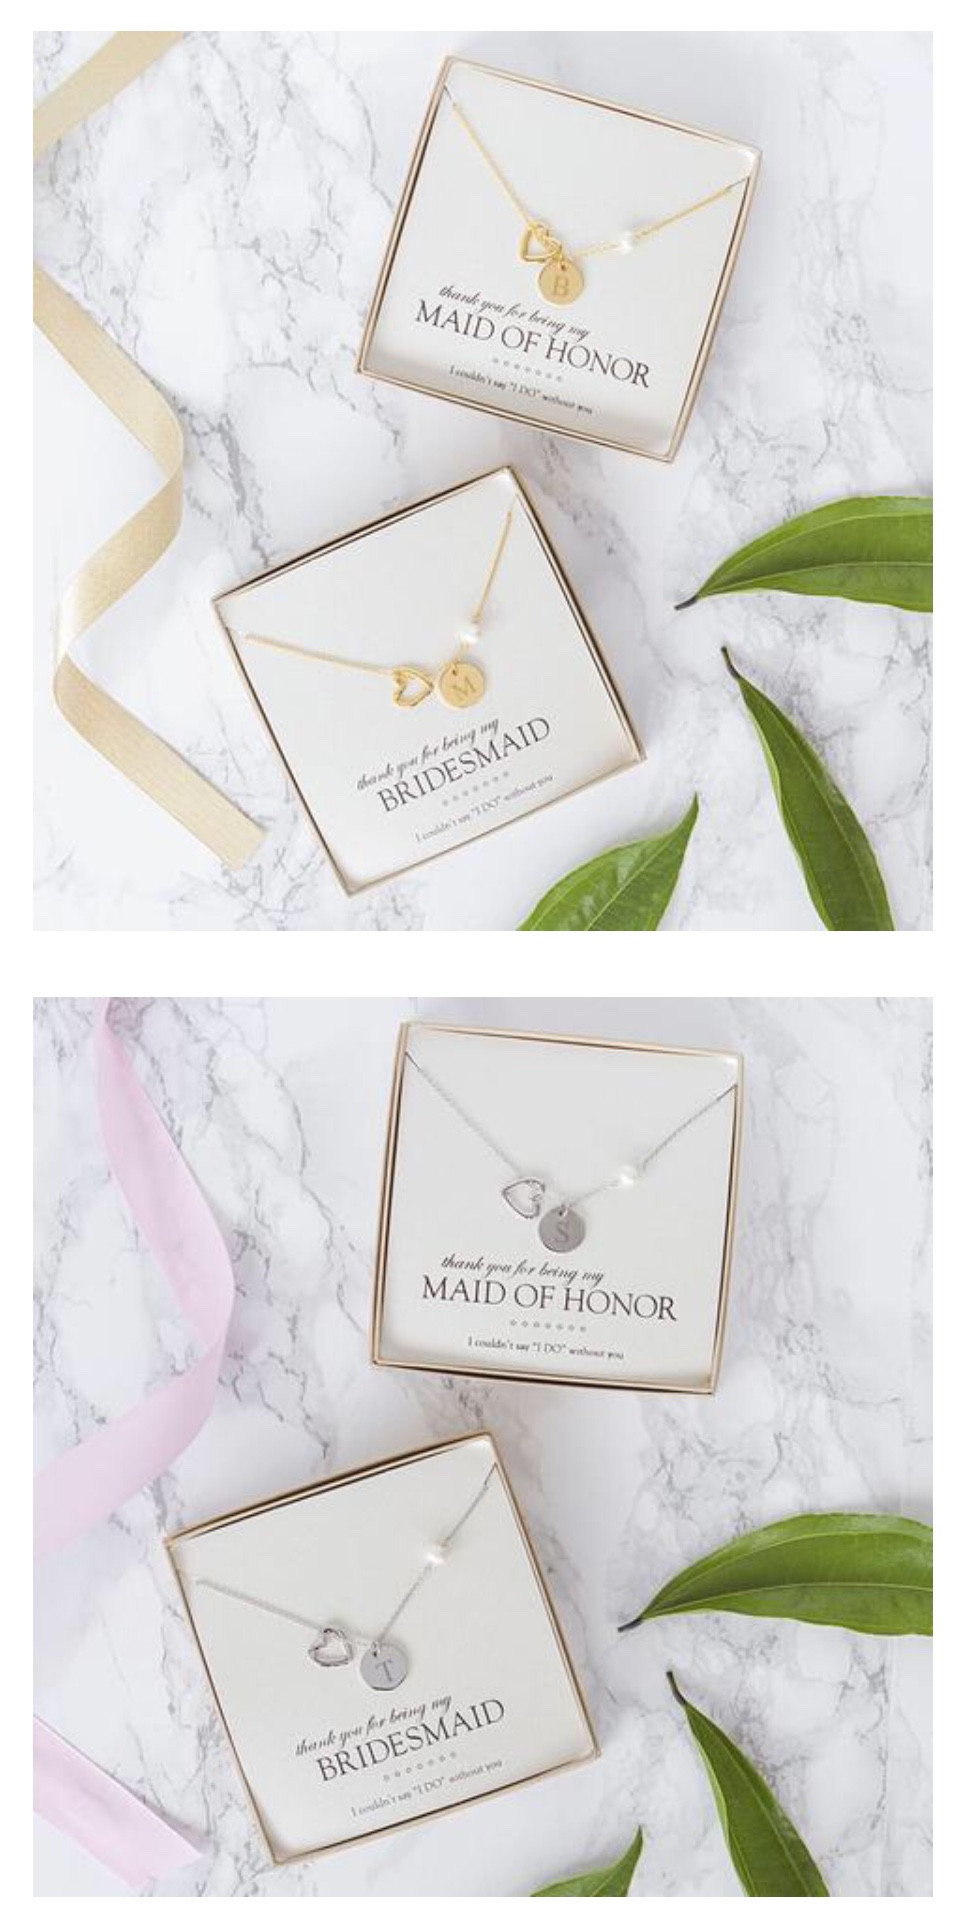 Personalized Bridesmaids Gifts - Initial Necklace